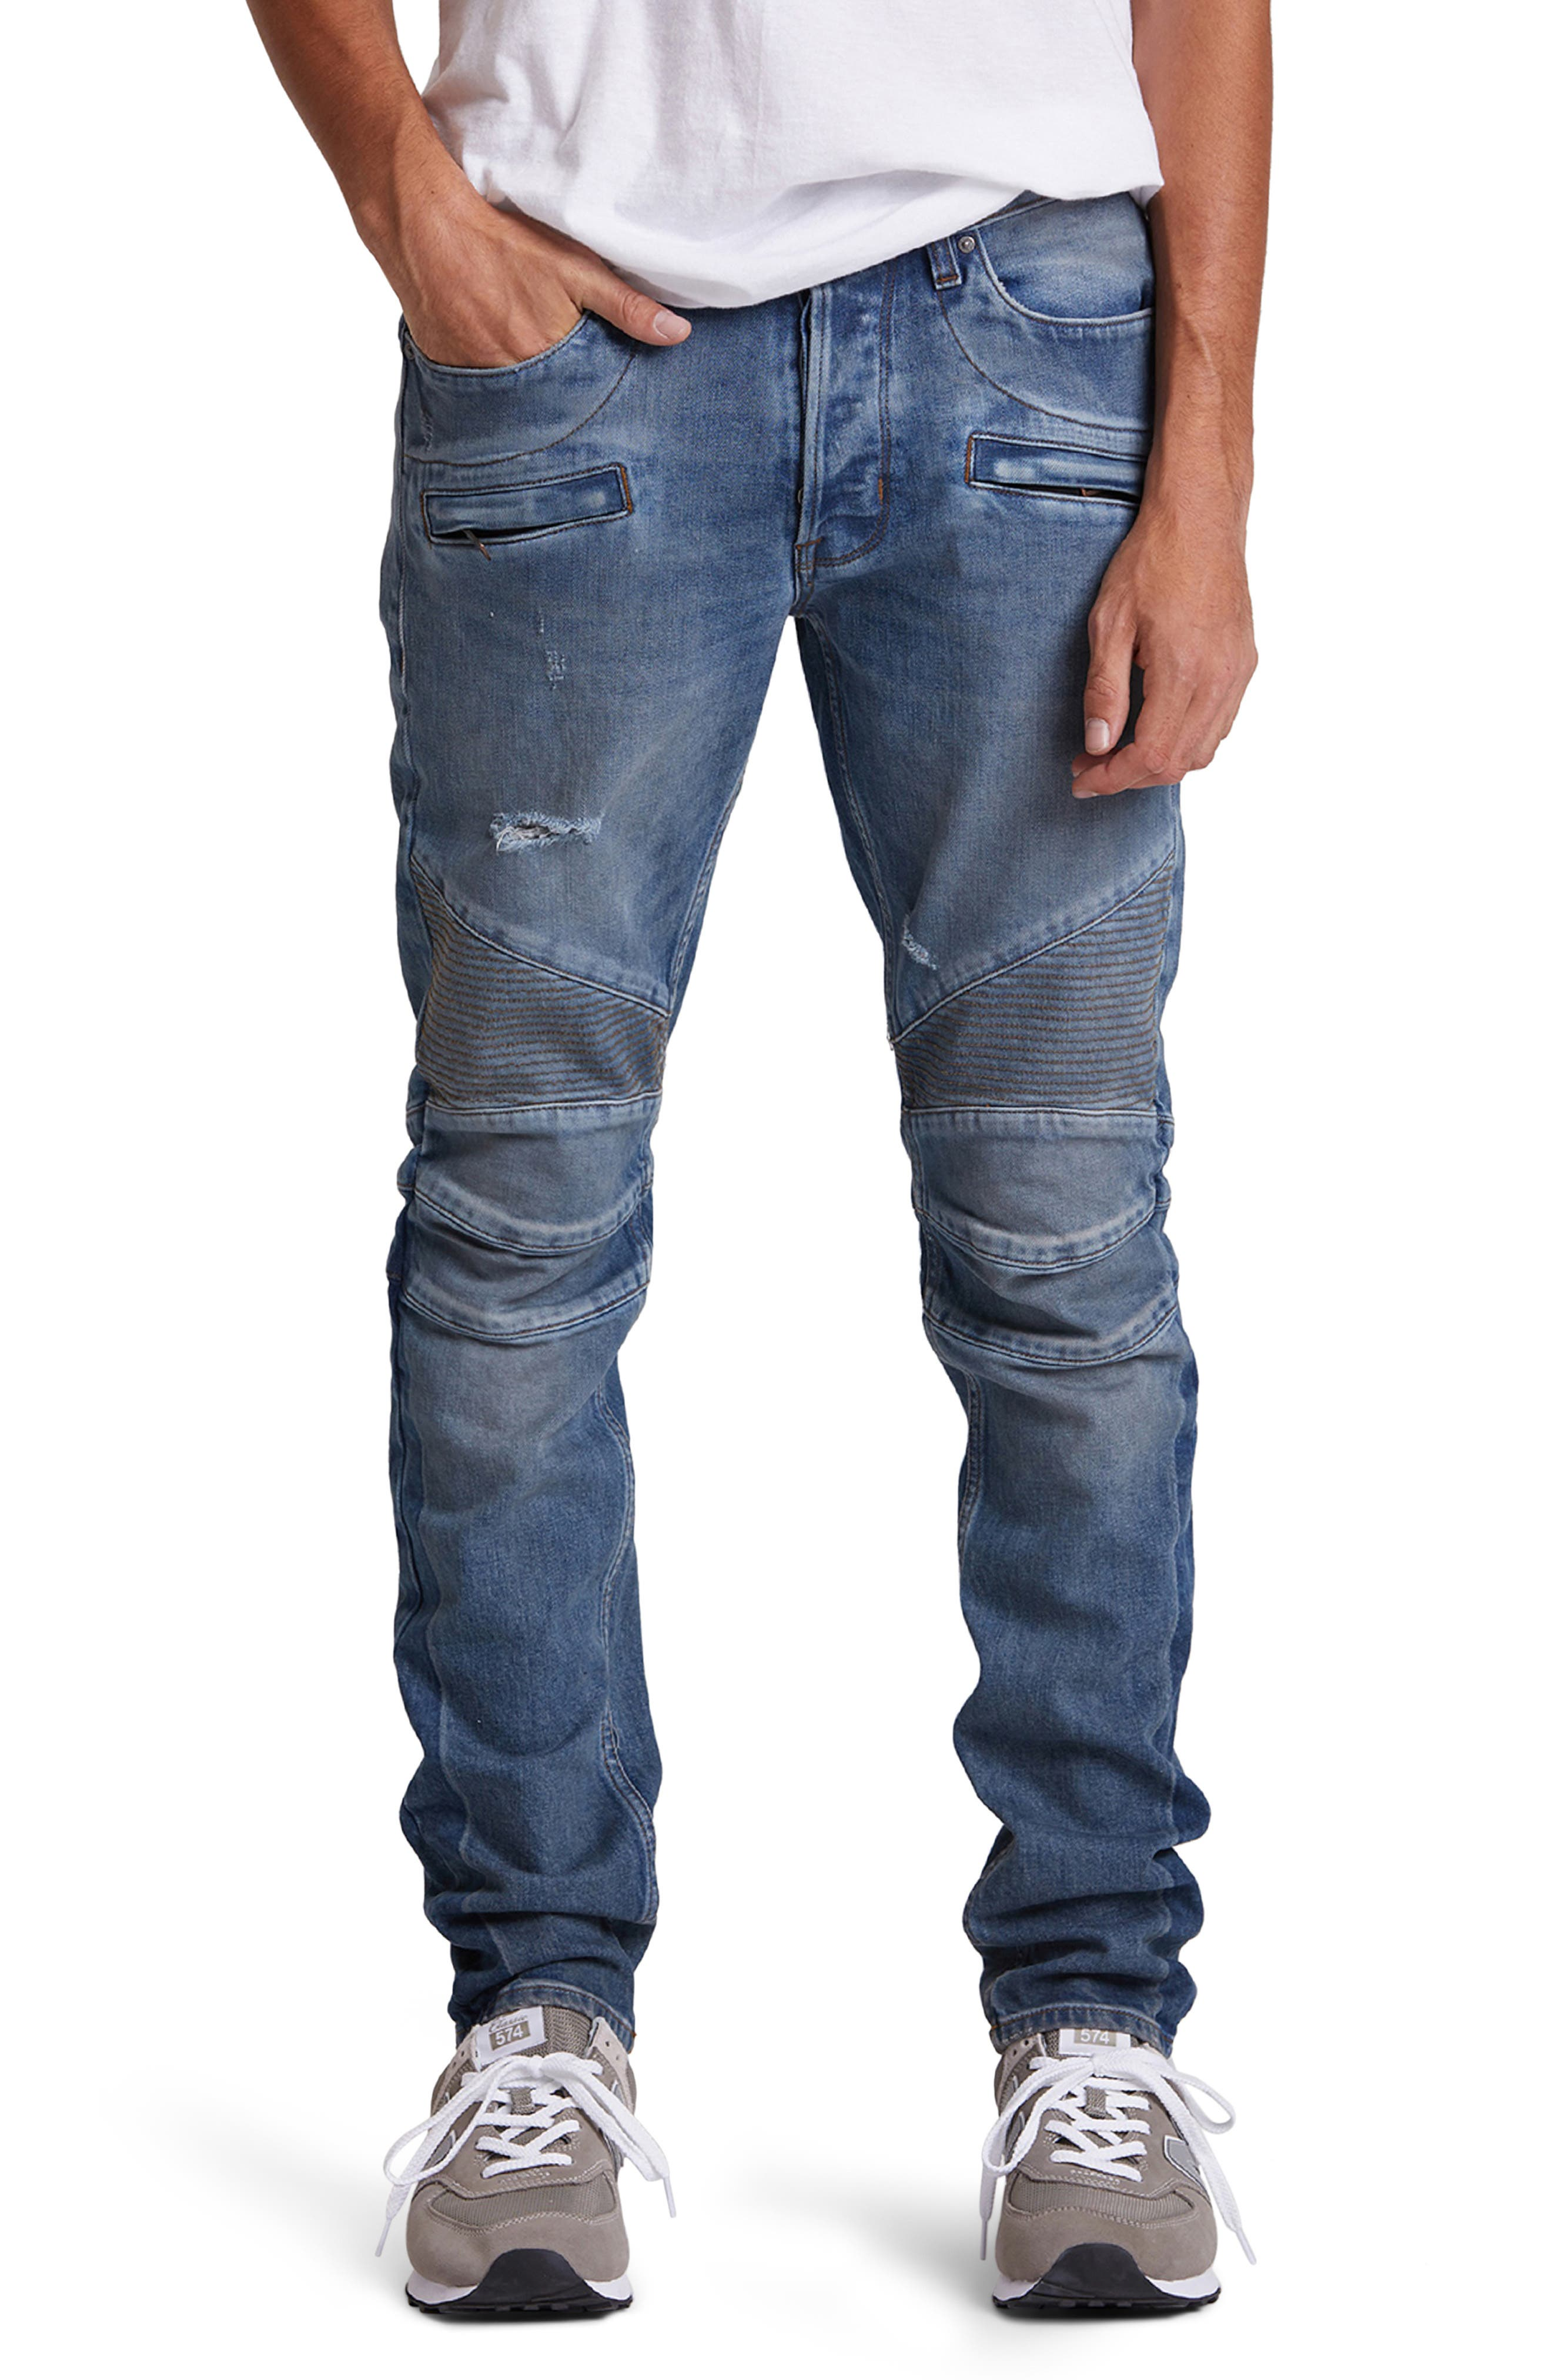 Nicks, shreds and heavy sanding rev up the moto attitude of panel-cut biker jeans sporting tough ribbing at the thighs and enough stretch to move. Style Name: Hudson Jeans Blinder Biker Ripped Skinny Fit Jeans (High Post). Style Number: 5929472. Available in stores.